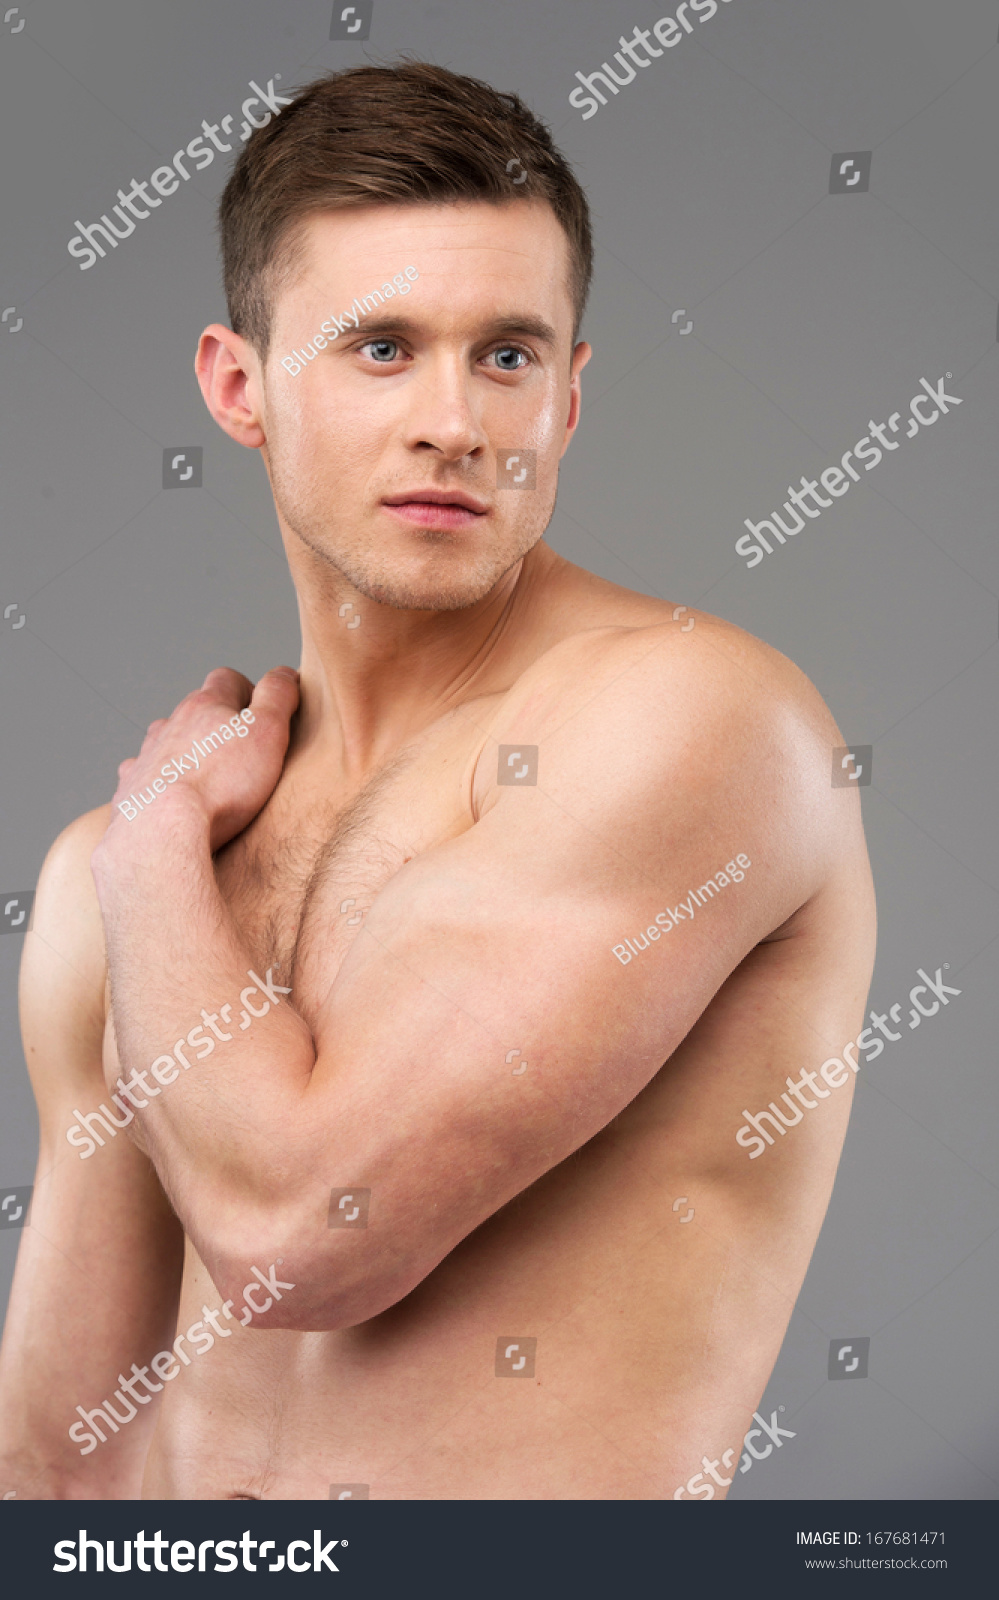 Sexy Nude Fit Male Model Posing Stock Photo 167681471 -8058